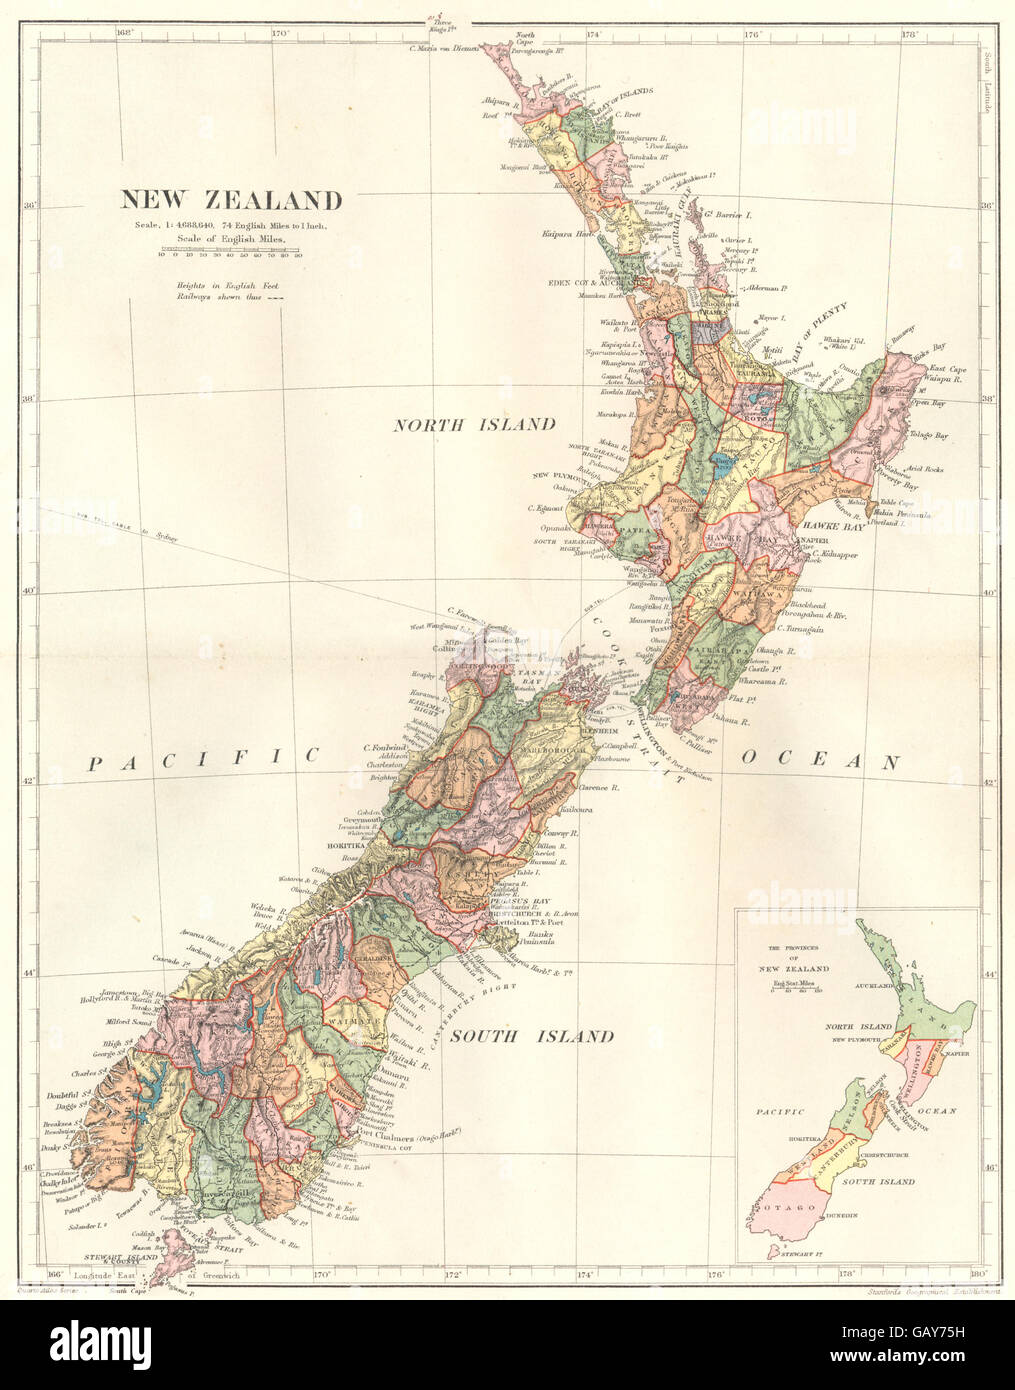 New Zealand Provinces Map.New Zealand Inset Provinces Of New Zealand Stanford 1892 Antique